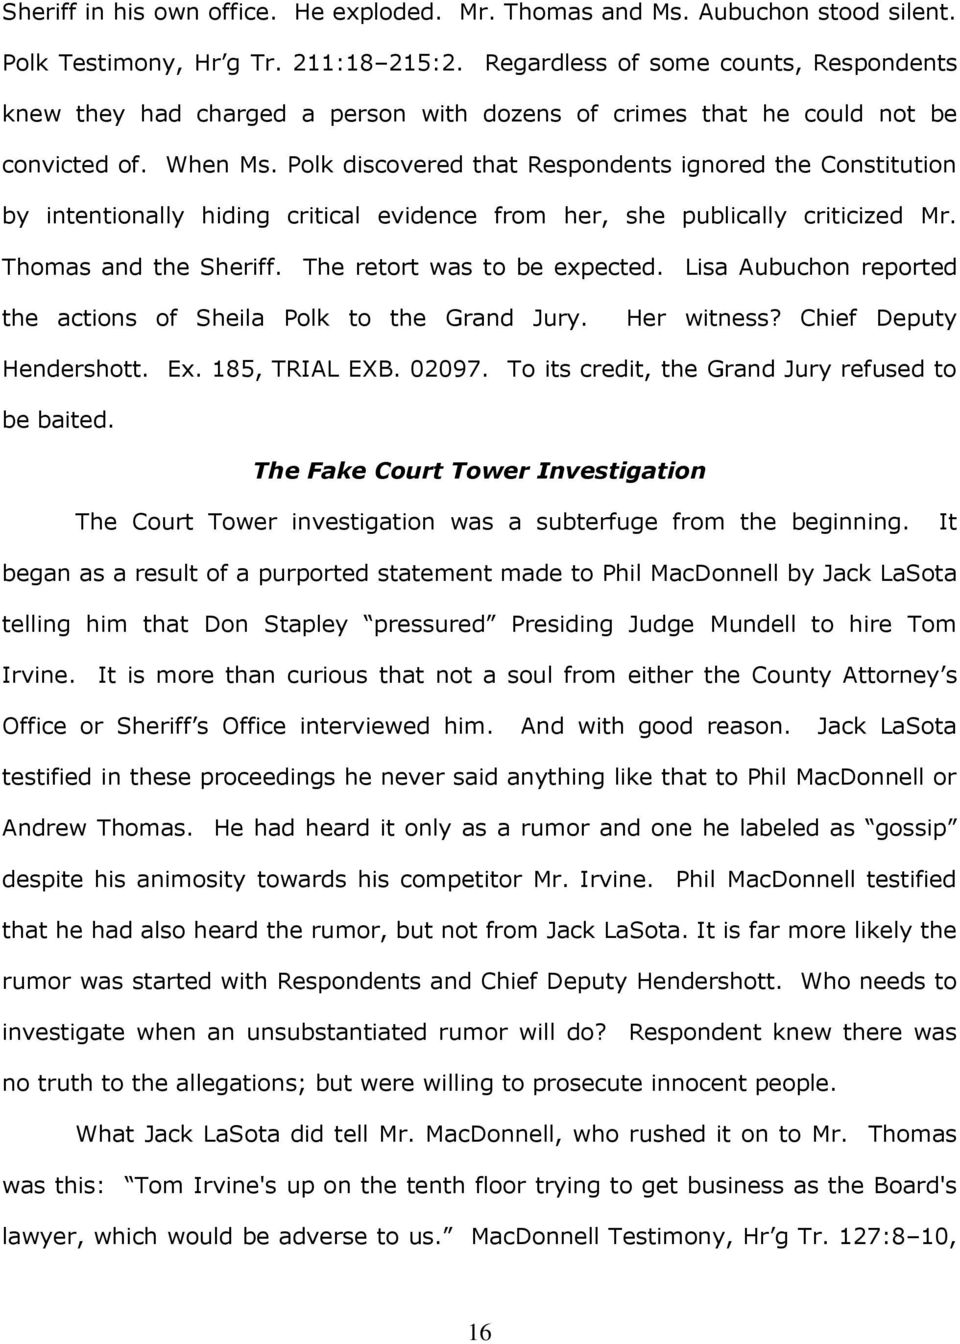 Polk discovered that Respondents ignored the Constitution by intentionally hiding critical evidence from her, she publically criticized Mr. Thomas and the Sheriff. The retort was to be expected.